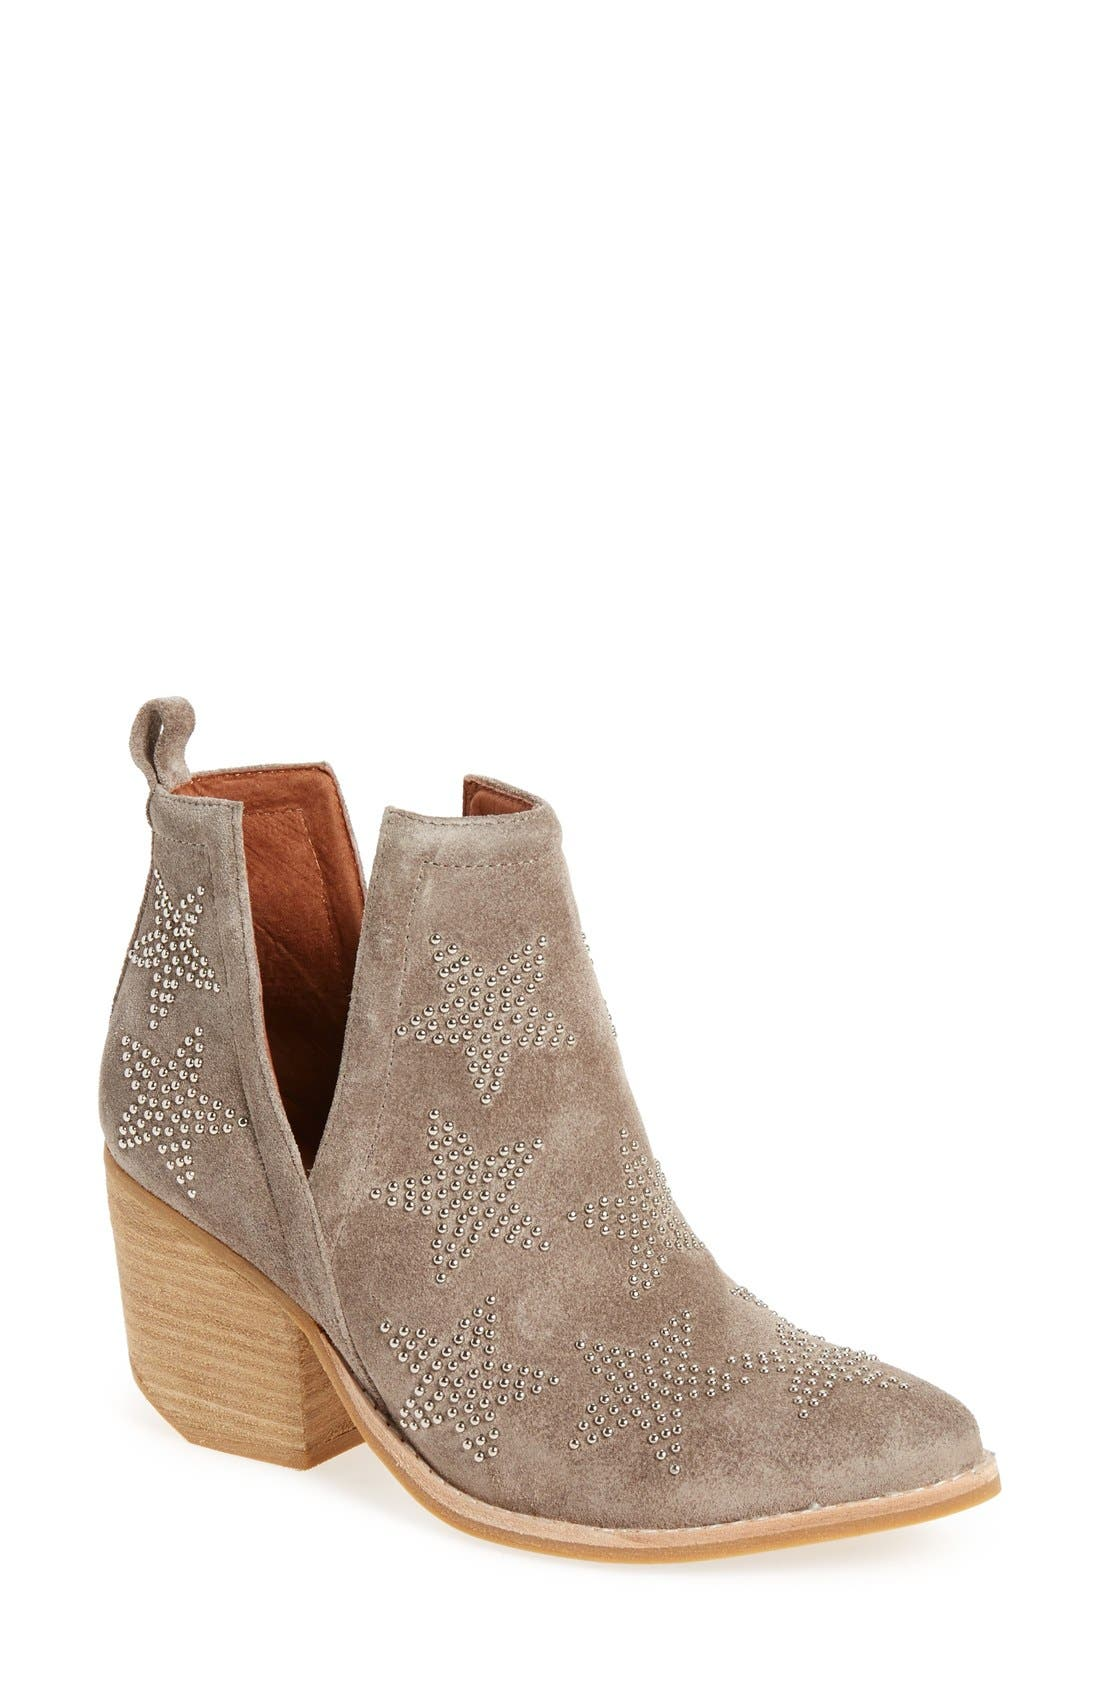 'Asterial' Star Studded Bootie, Main, color, 250